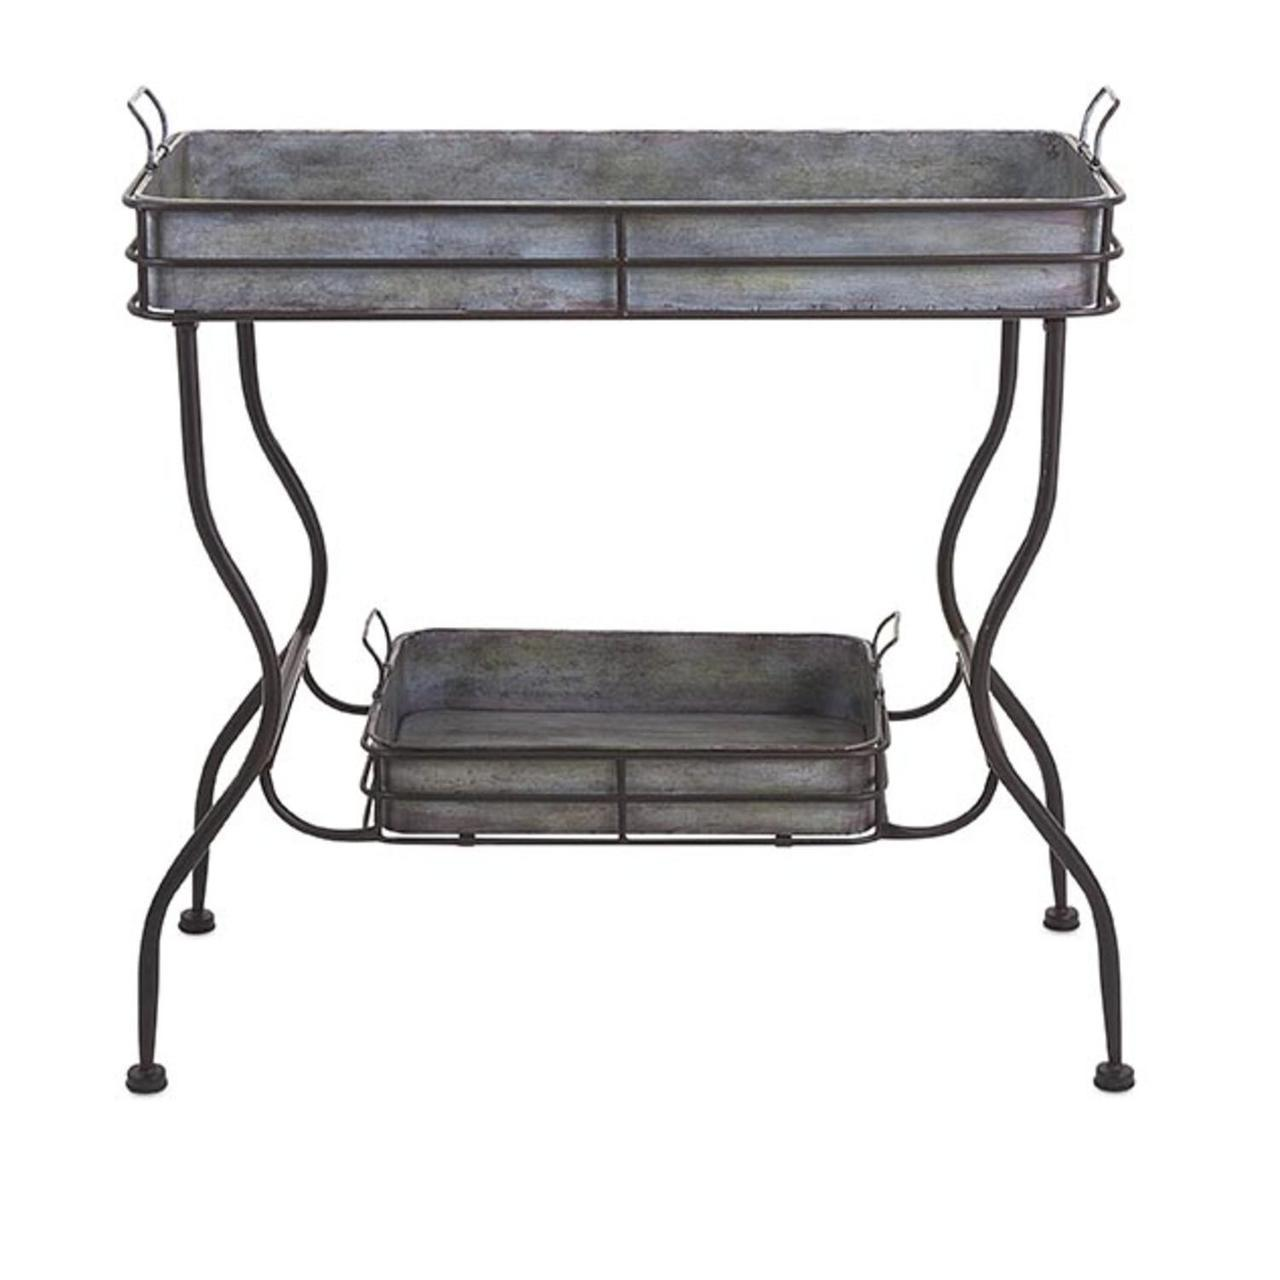 rustic silver galvanized metal accent table with removable tray serving trays marble end target structube coffee corner small decorative cloths console furniture short floor lamps